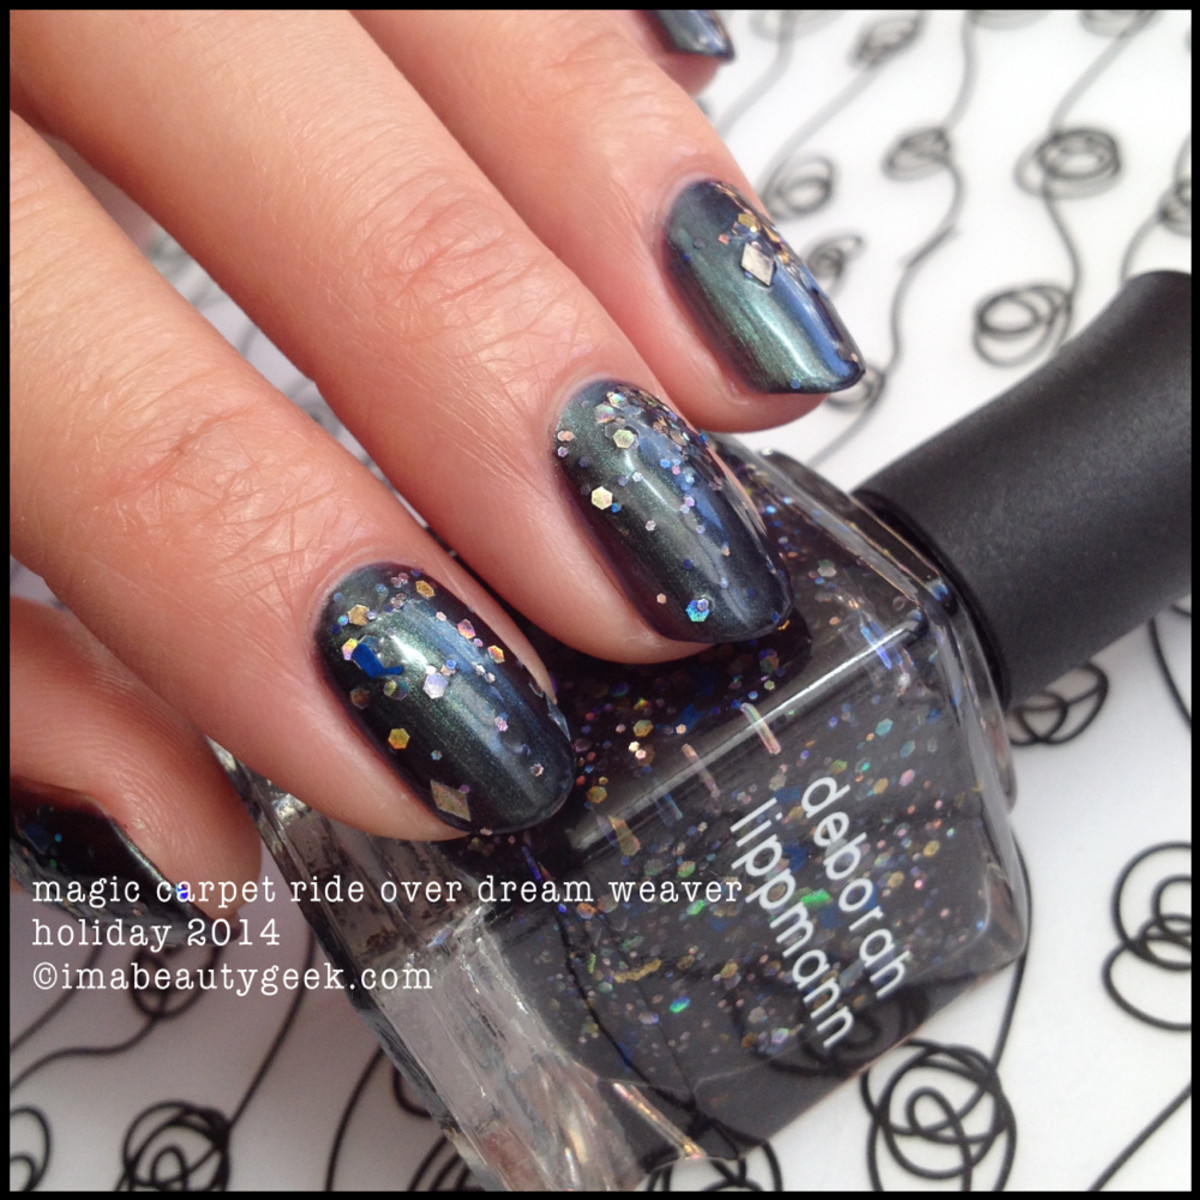 Deborah Lippmann Fantastical Magic Carpet Ride over Dream Weaver Holiday 2014